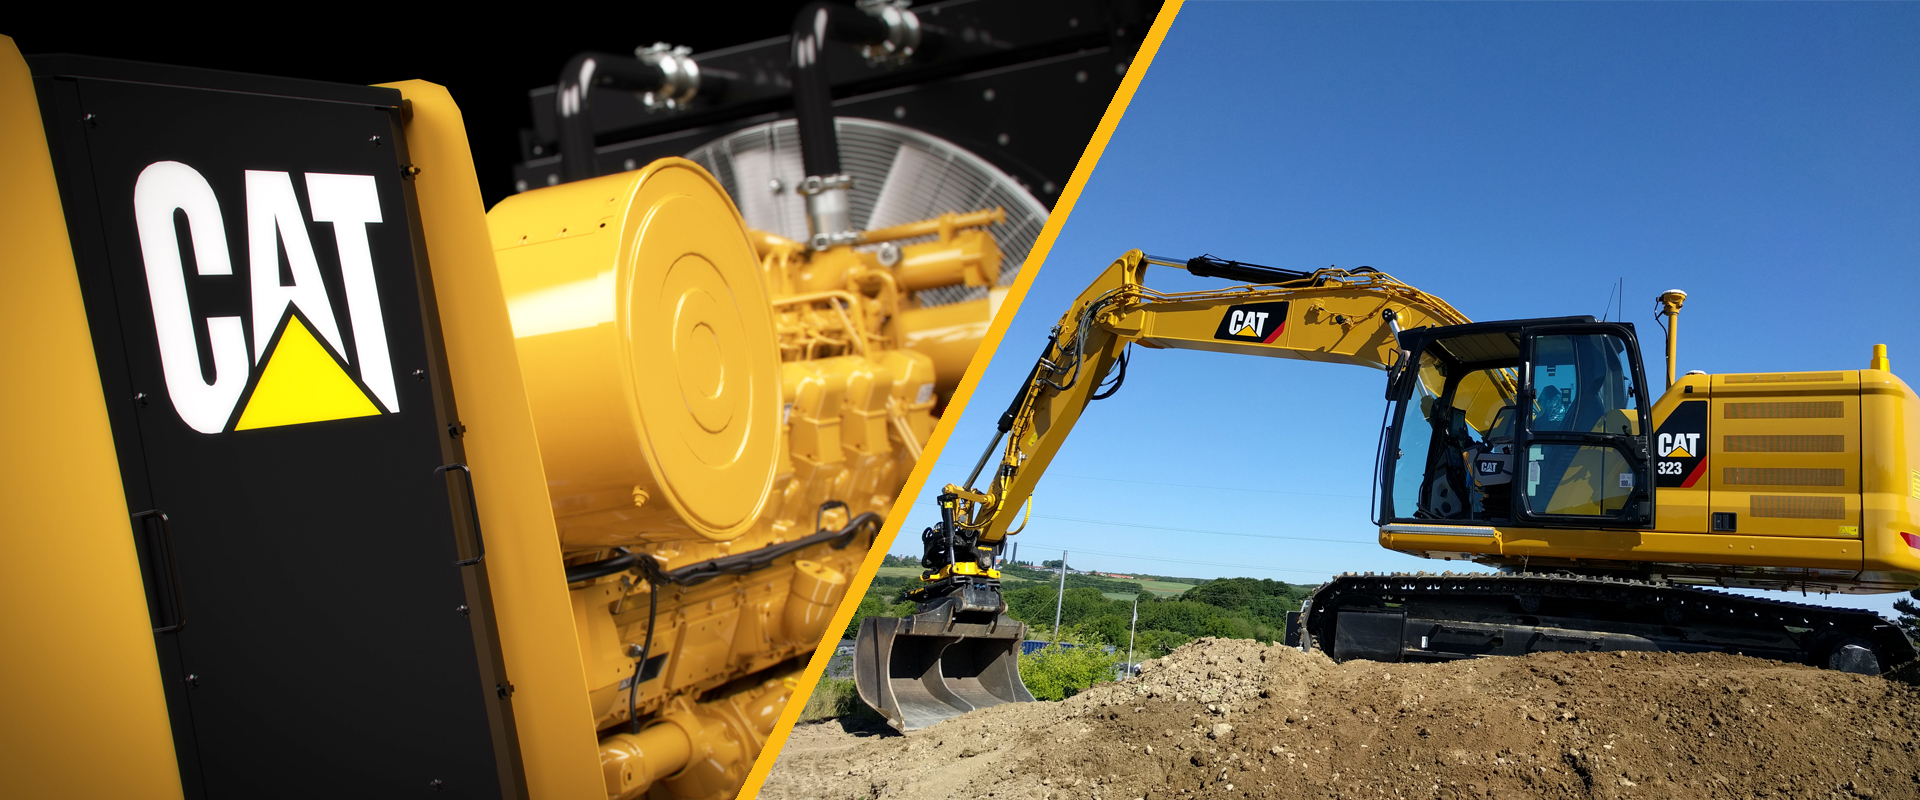 frontpage-power-equipment-version3.jpg